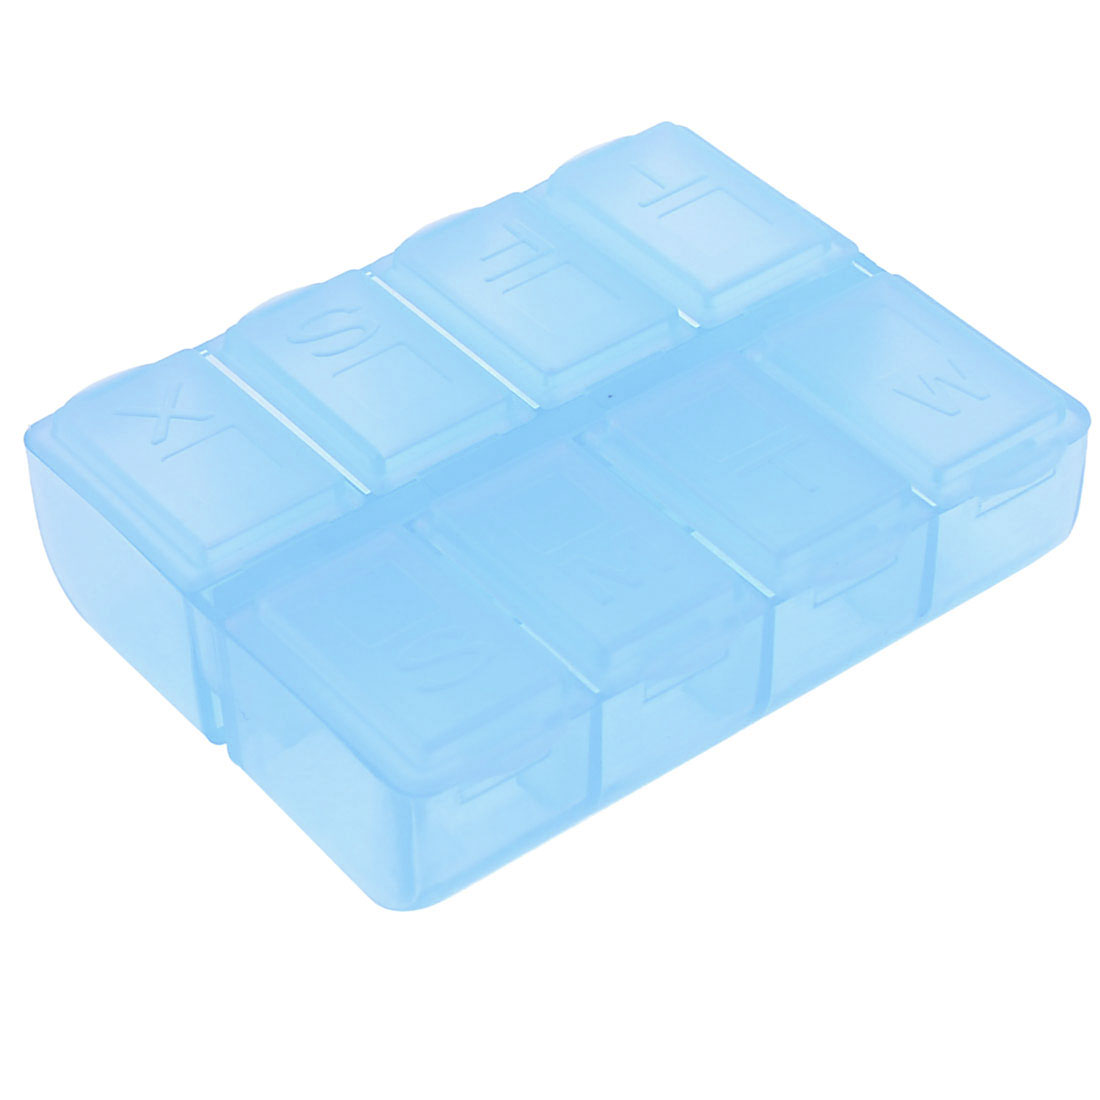 Travel Plastic 8 Compartments Gadget Pill Organizer Box Blue 7.3cm x 5.8cm x 2cm